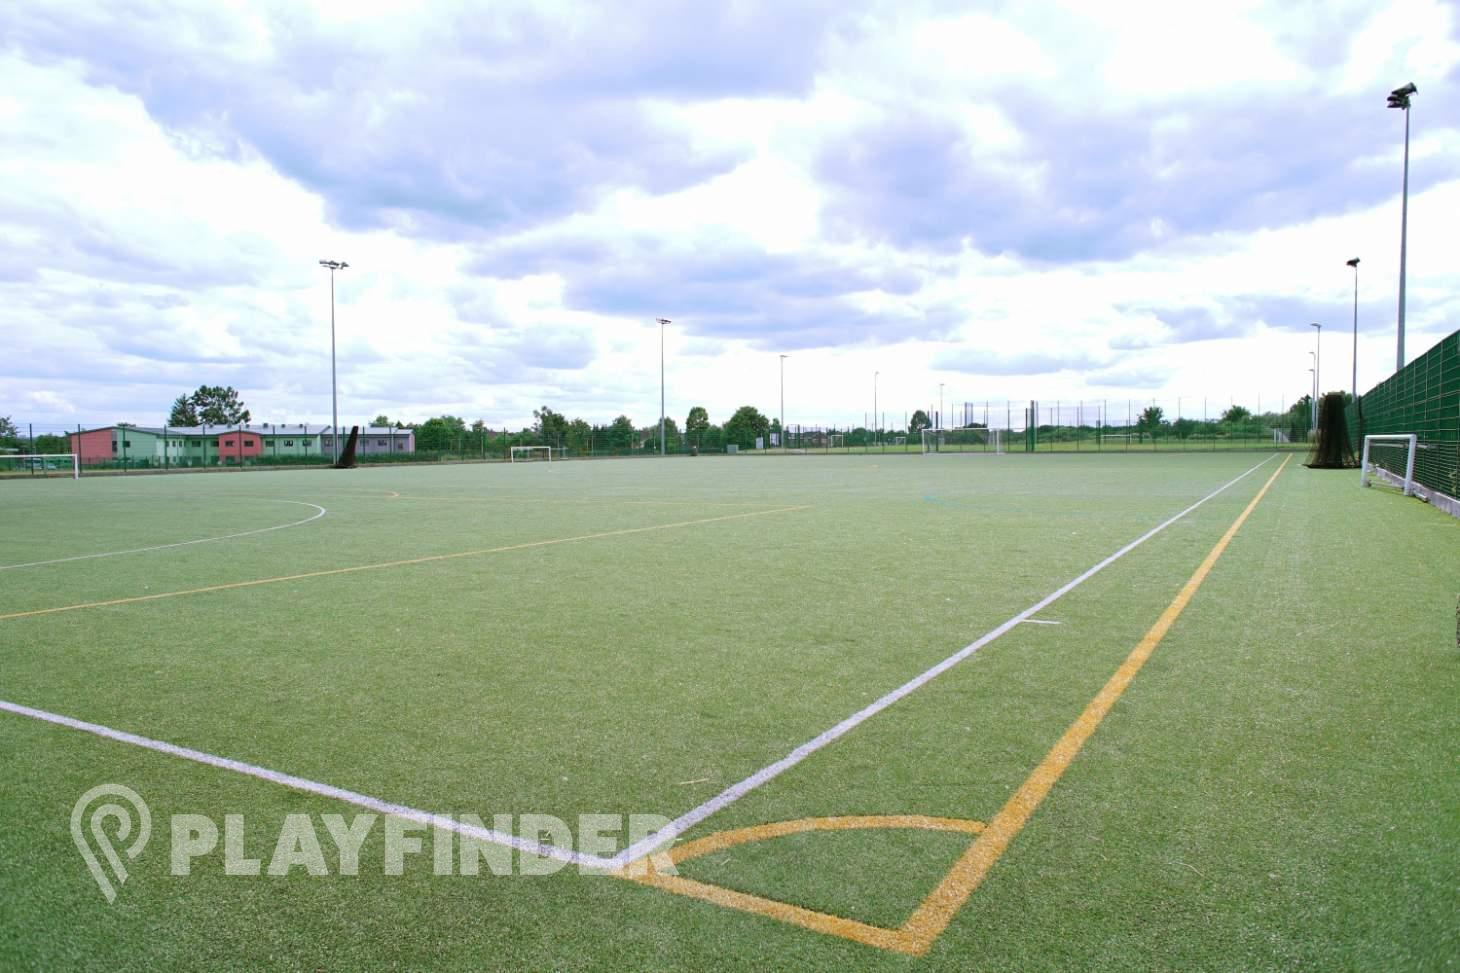 Cox Green Leisure Centre 11 a side | 3G Astroturf football pitch